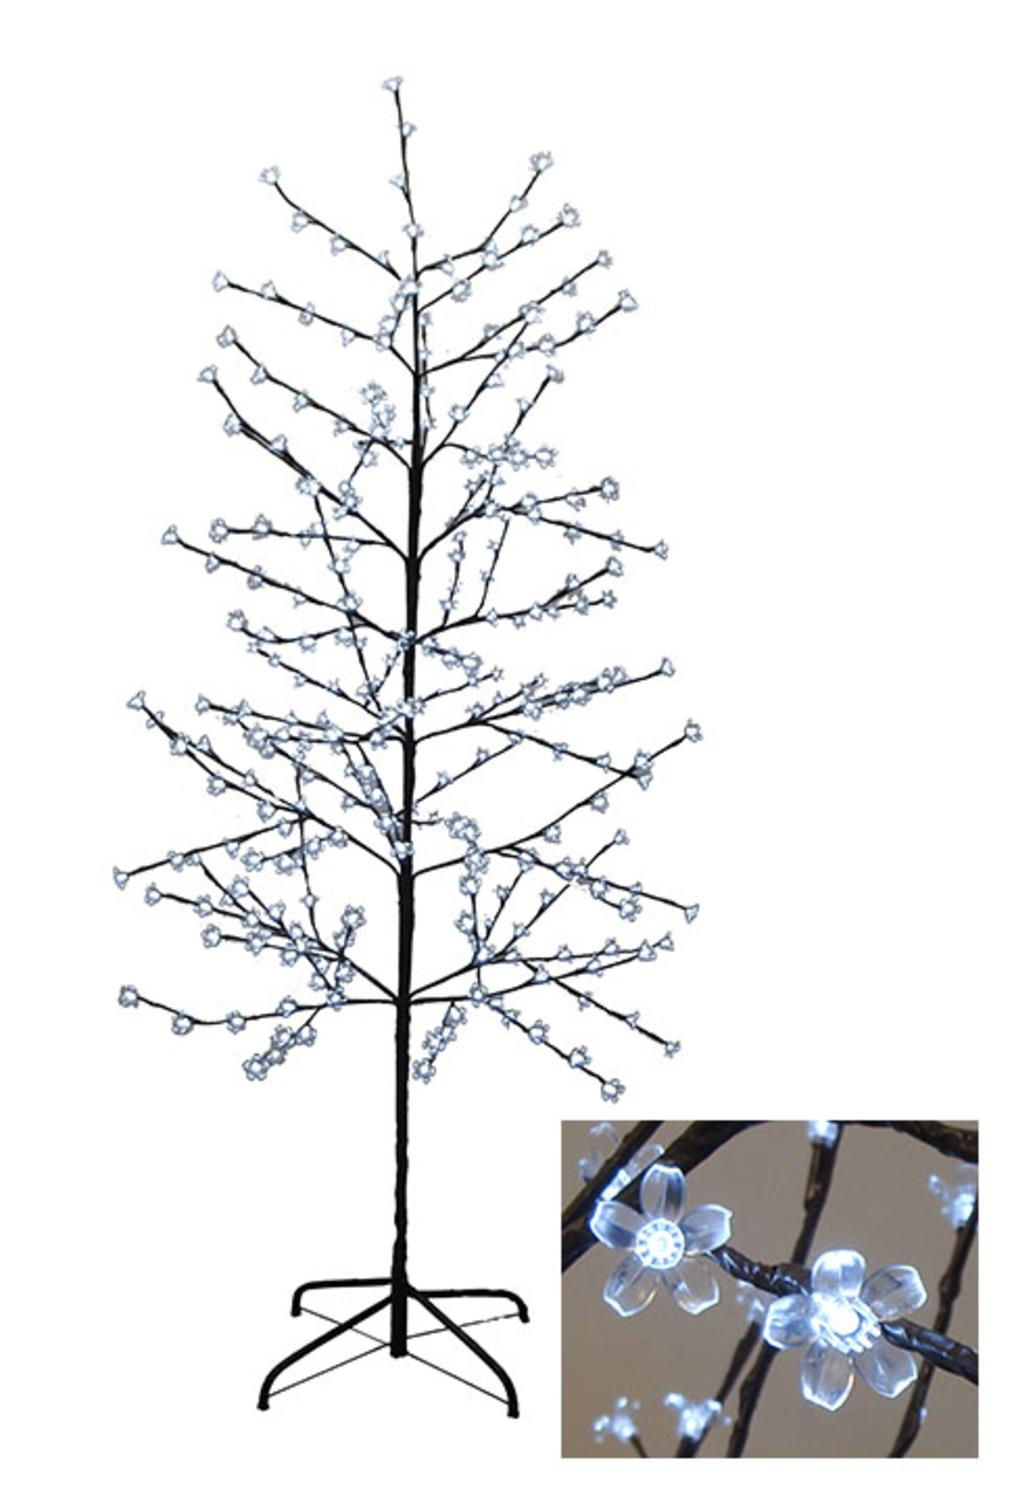 6' Enchanted Garden LED Lighted Cherry Blossom Flower Tree - Pure White Lights